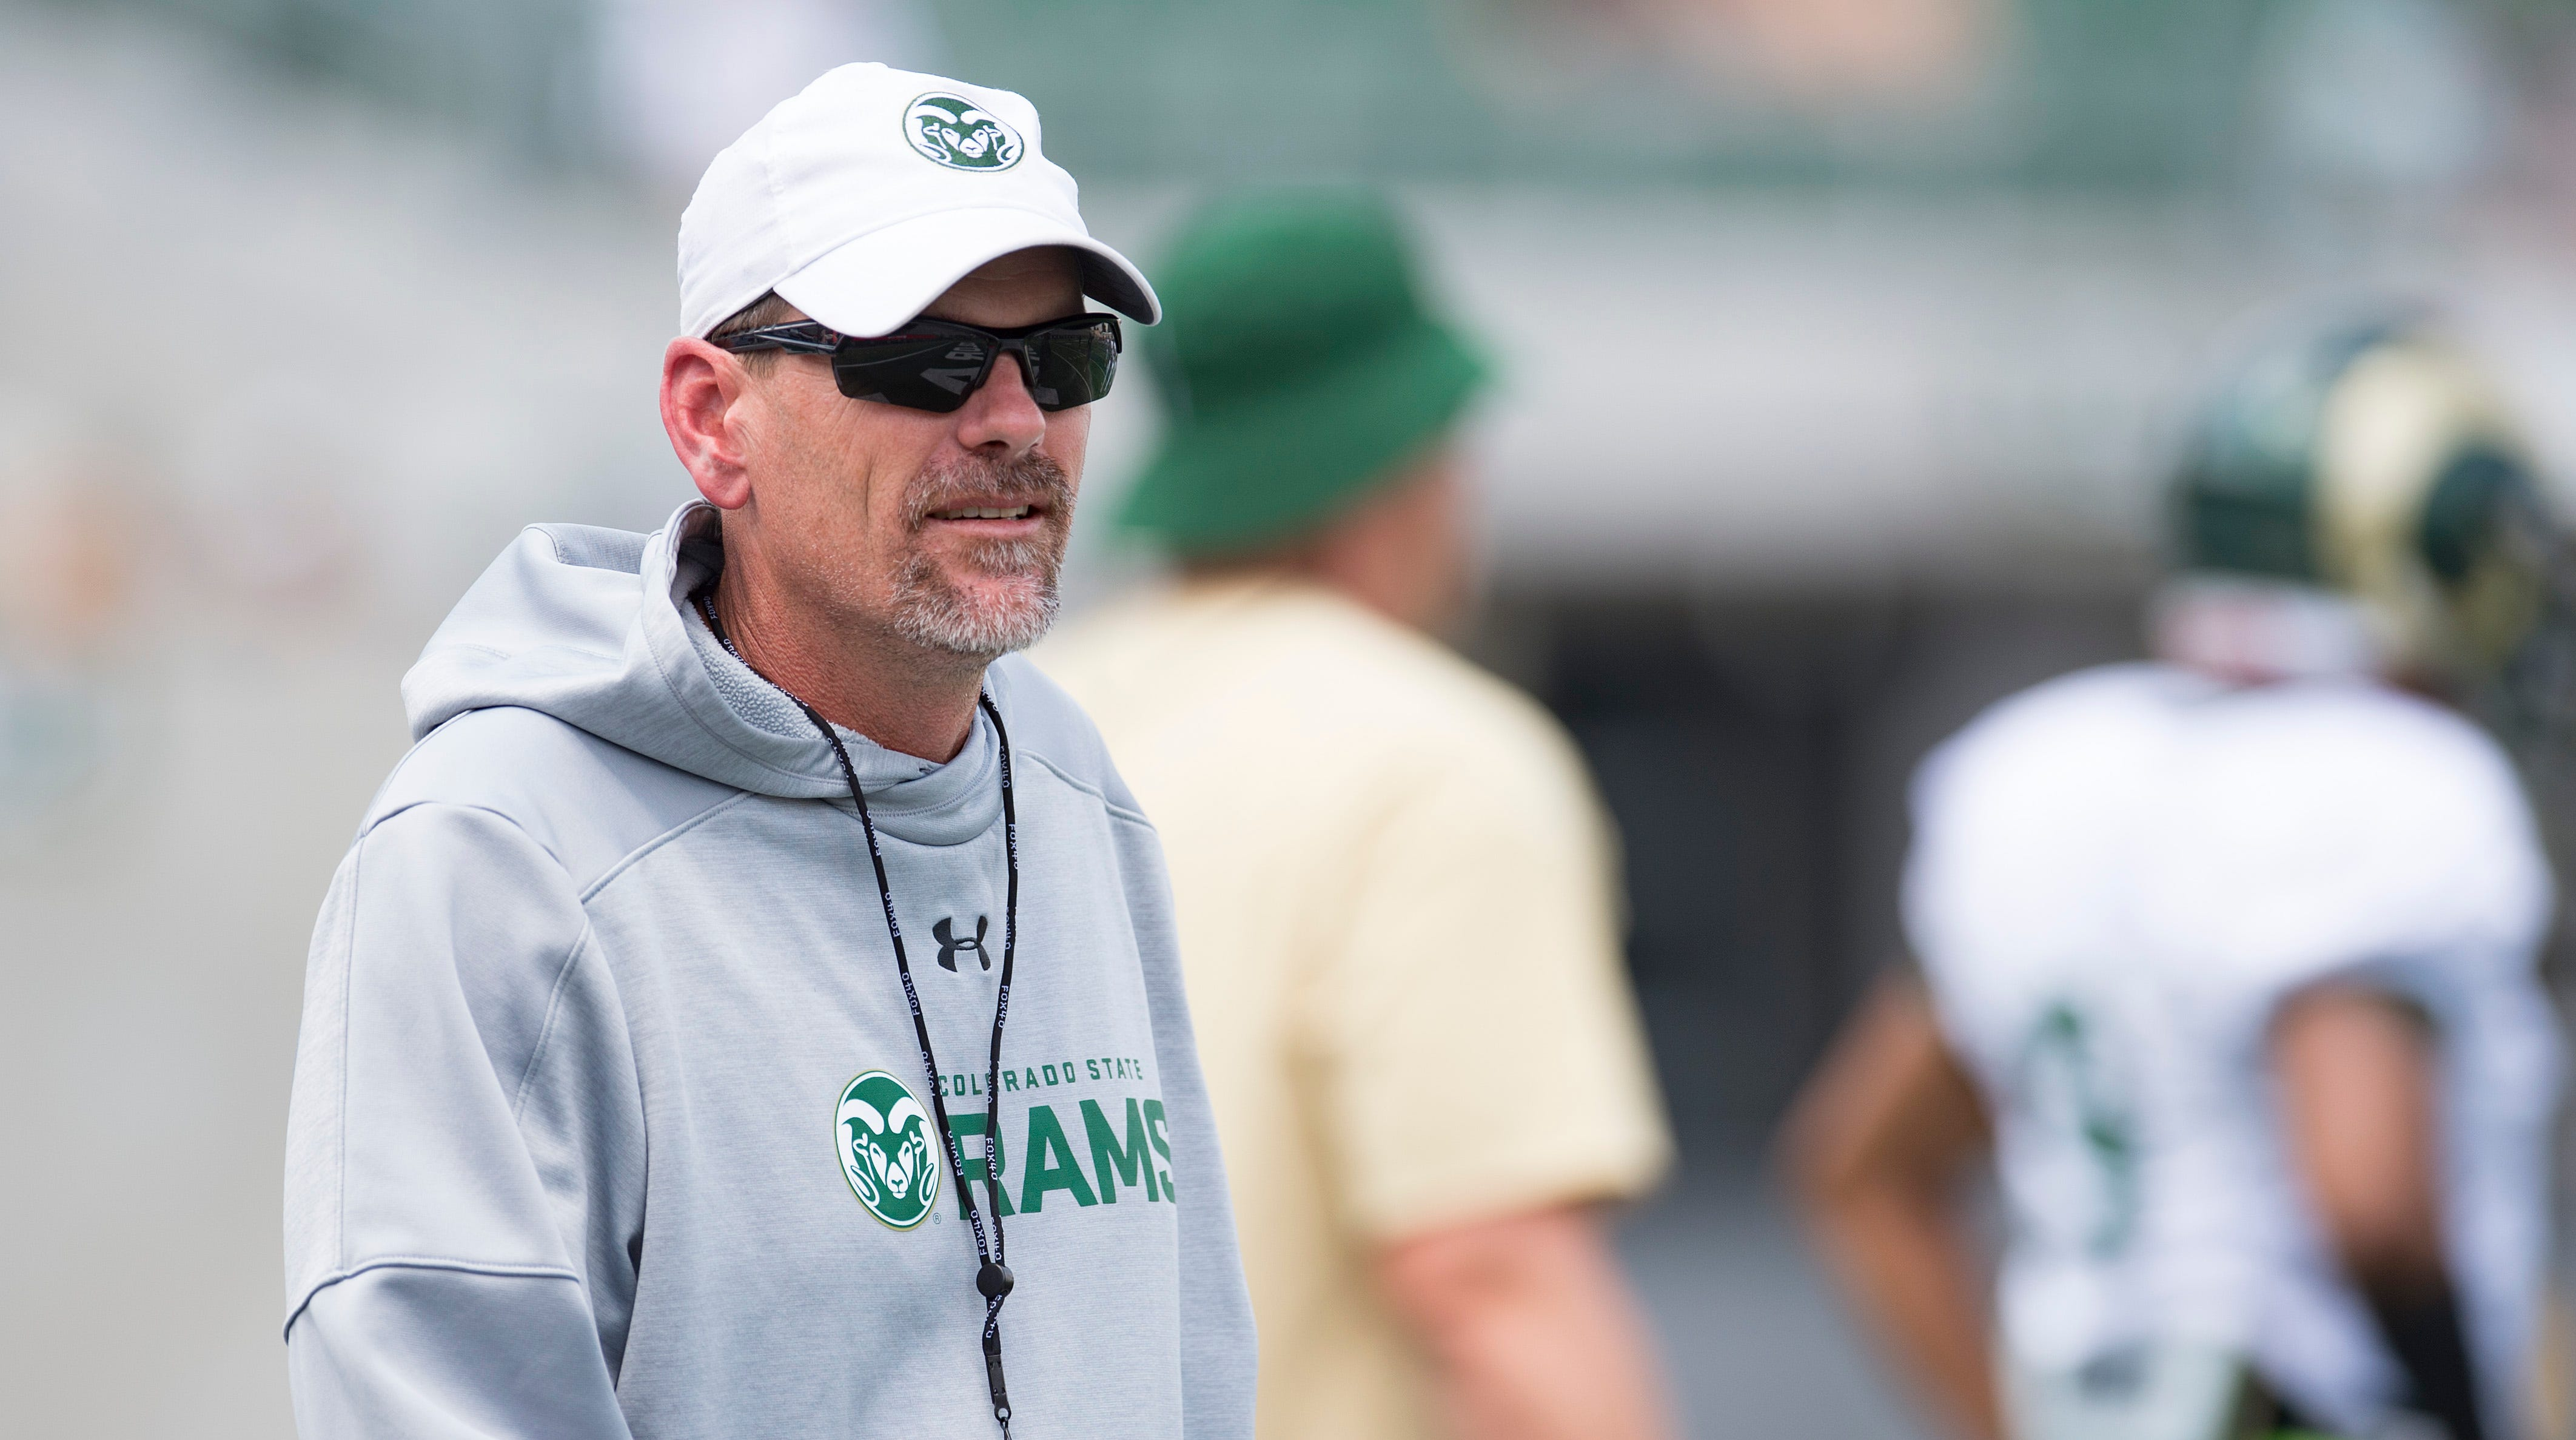 CSU football coach Mike Bobo misses practice while undergoing medical evaluation